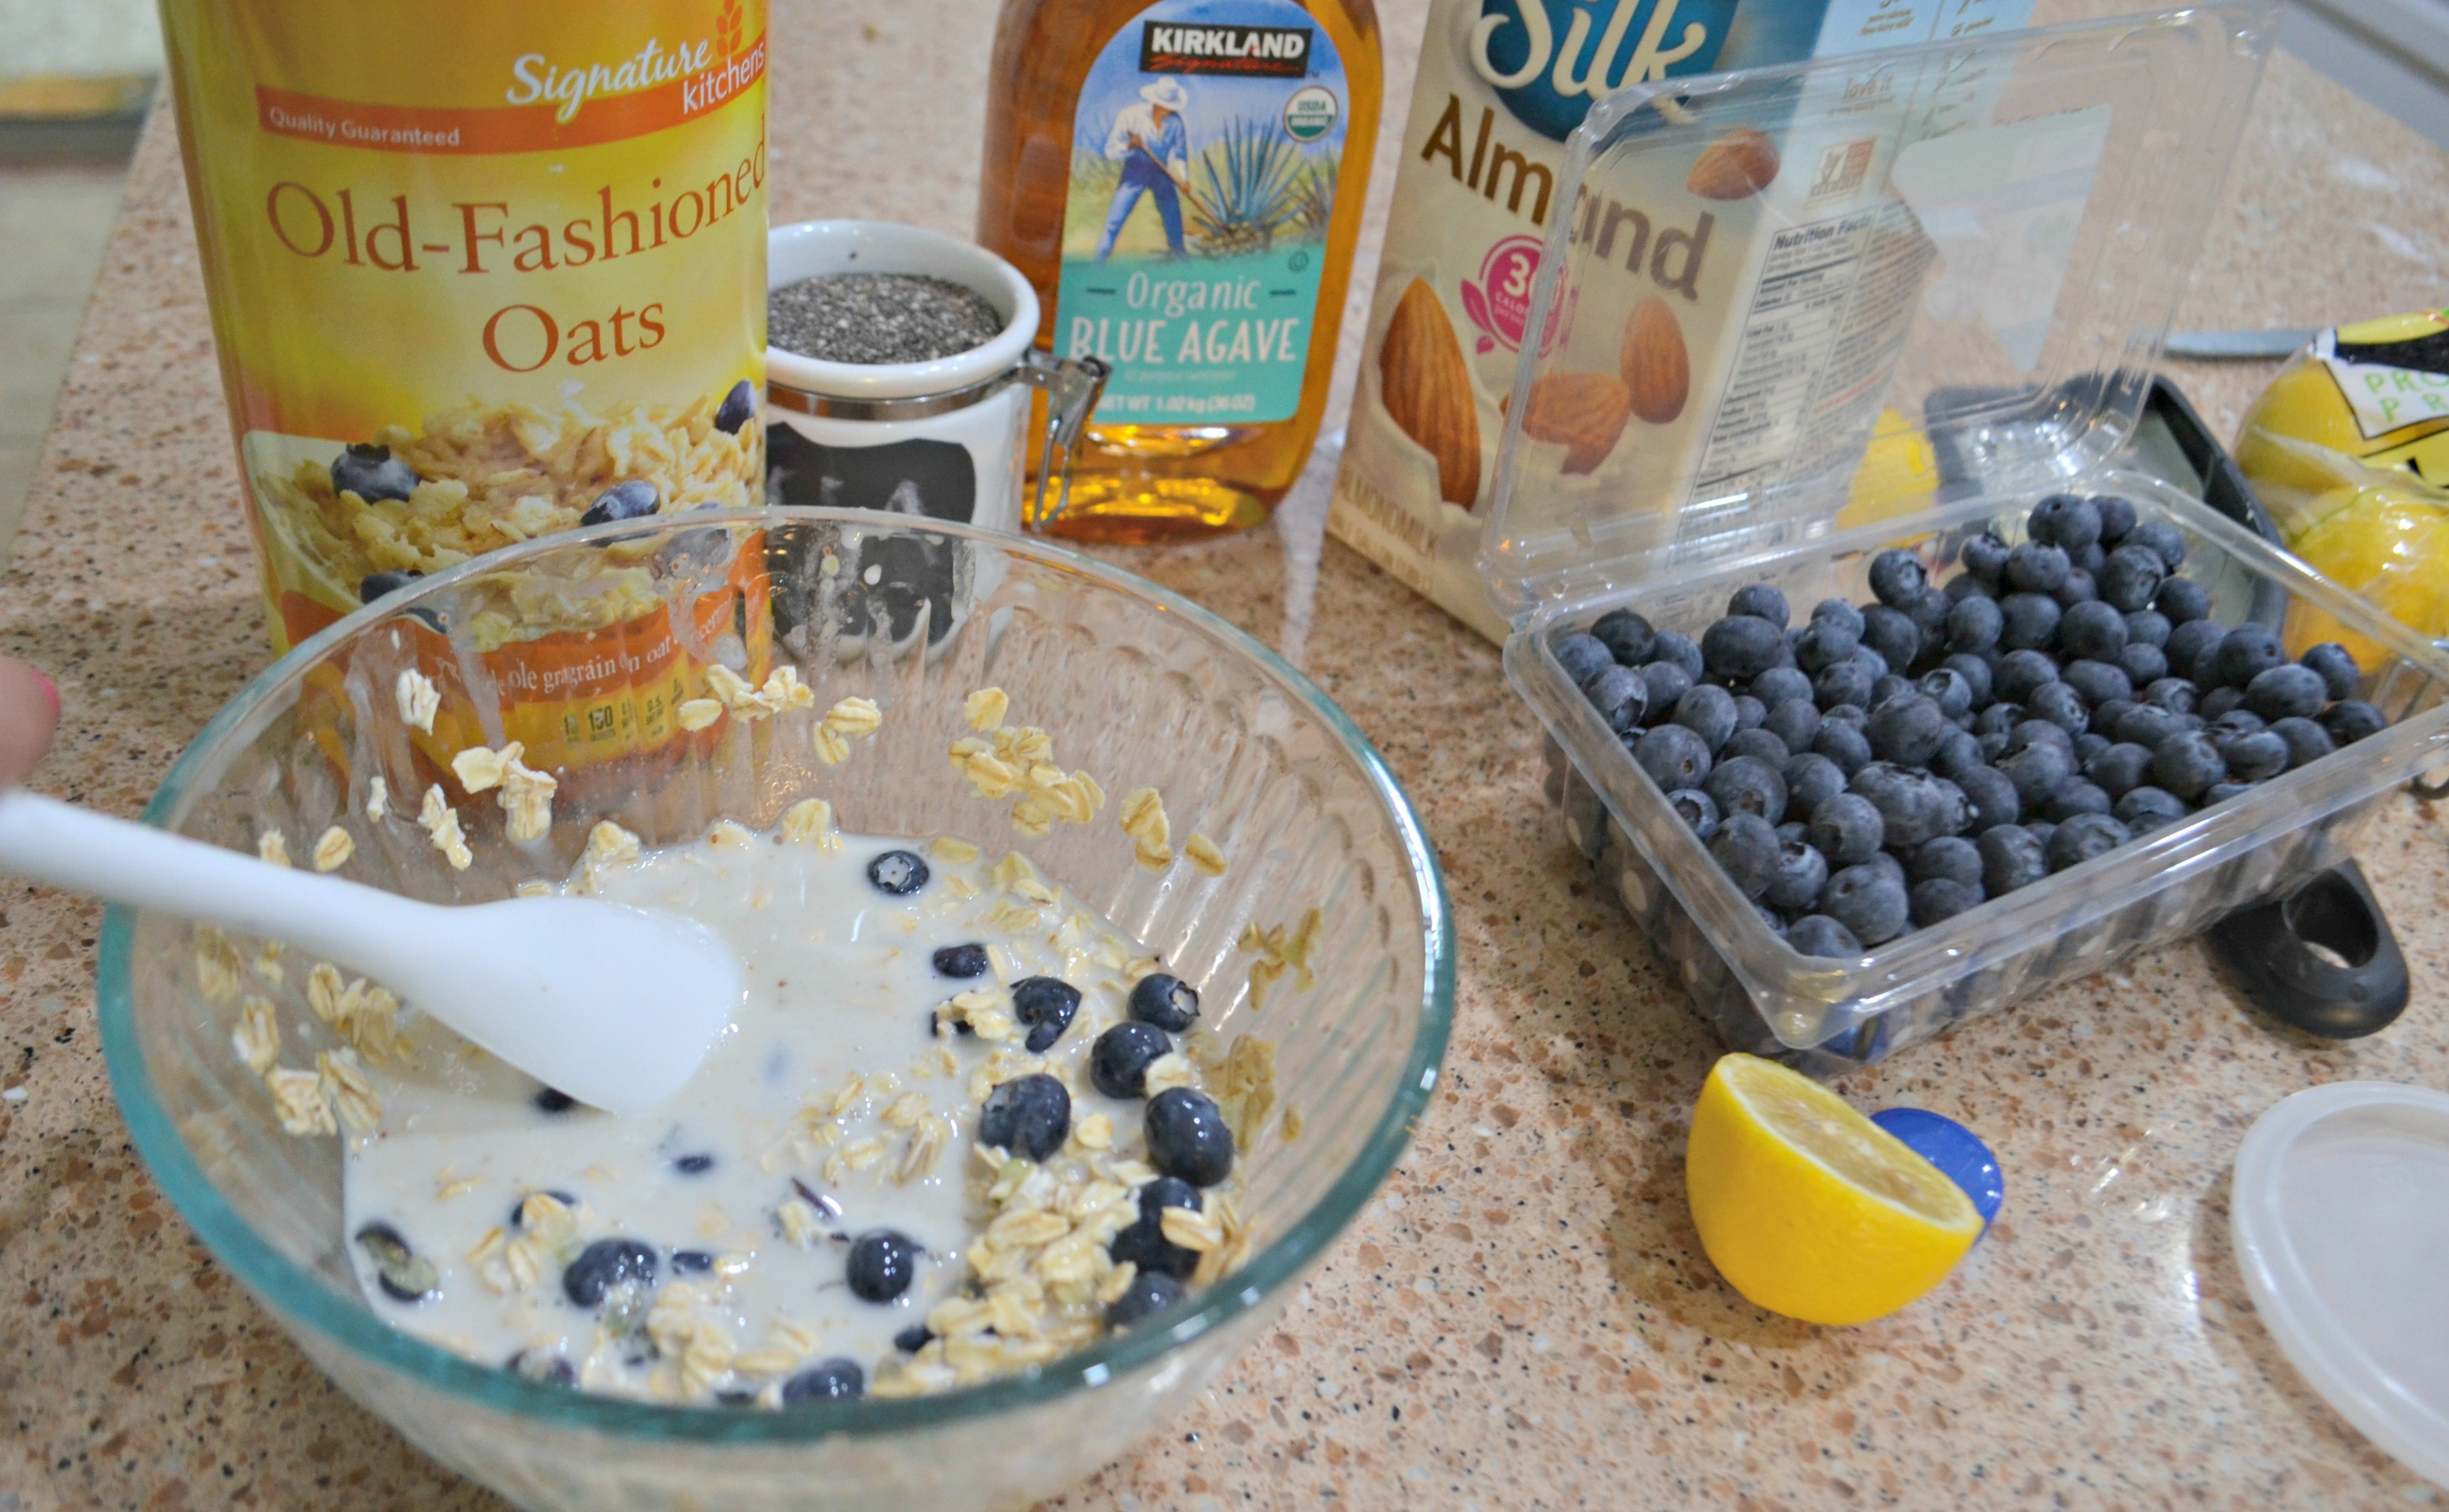 Blueberry Lemon Chia Seed Overnight Oats - mixing everything in a bowl